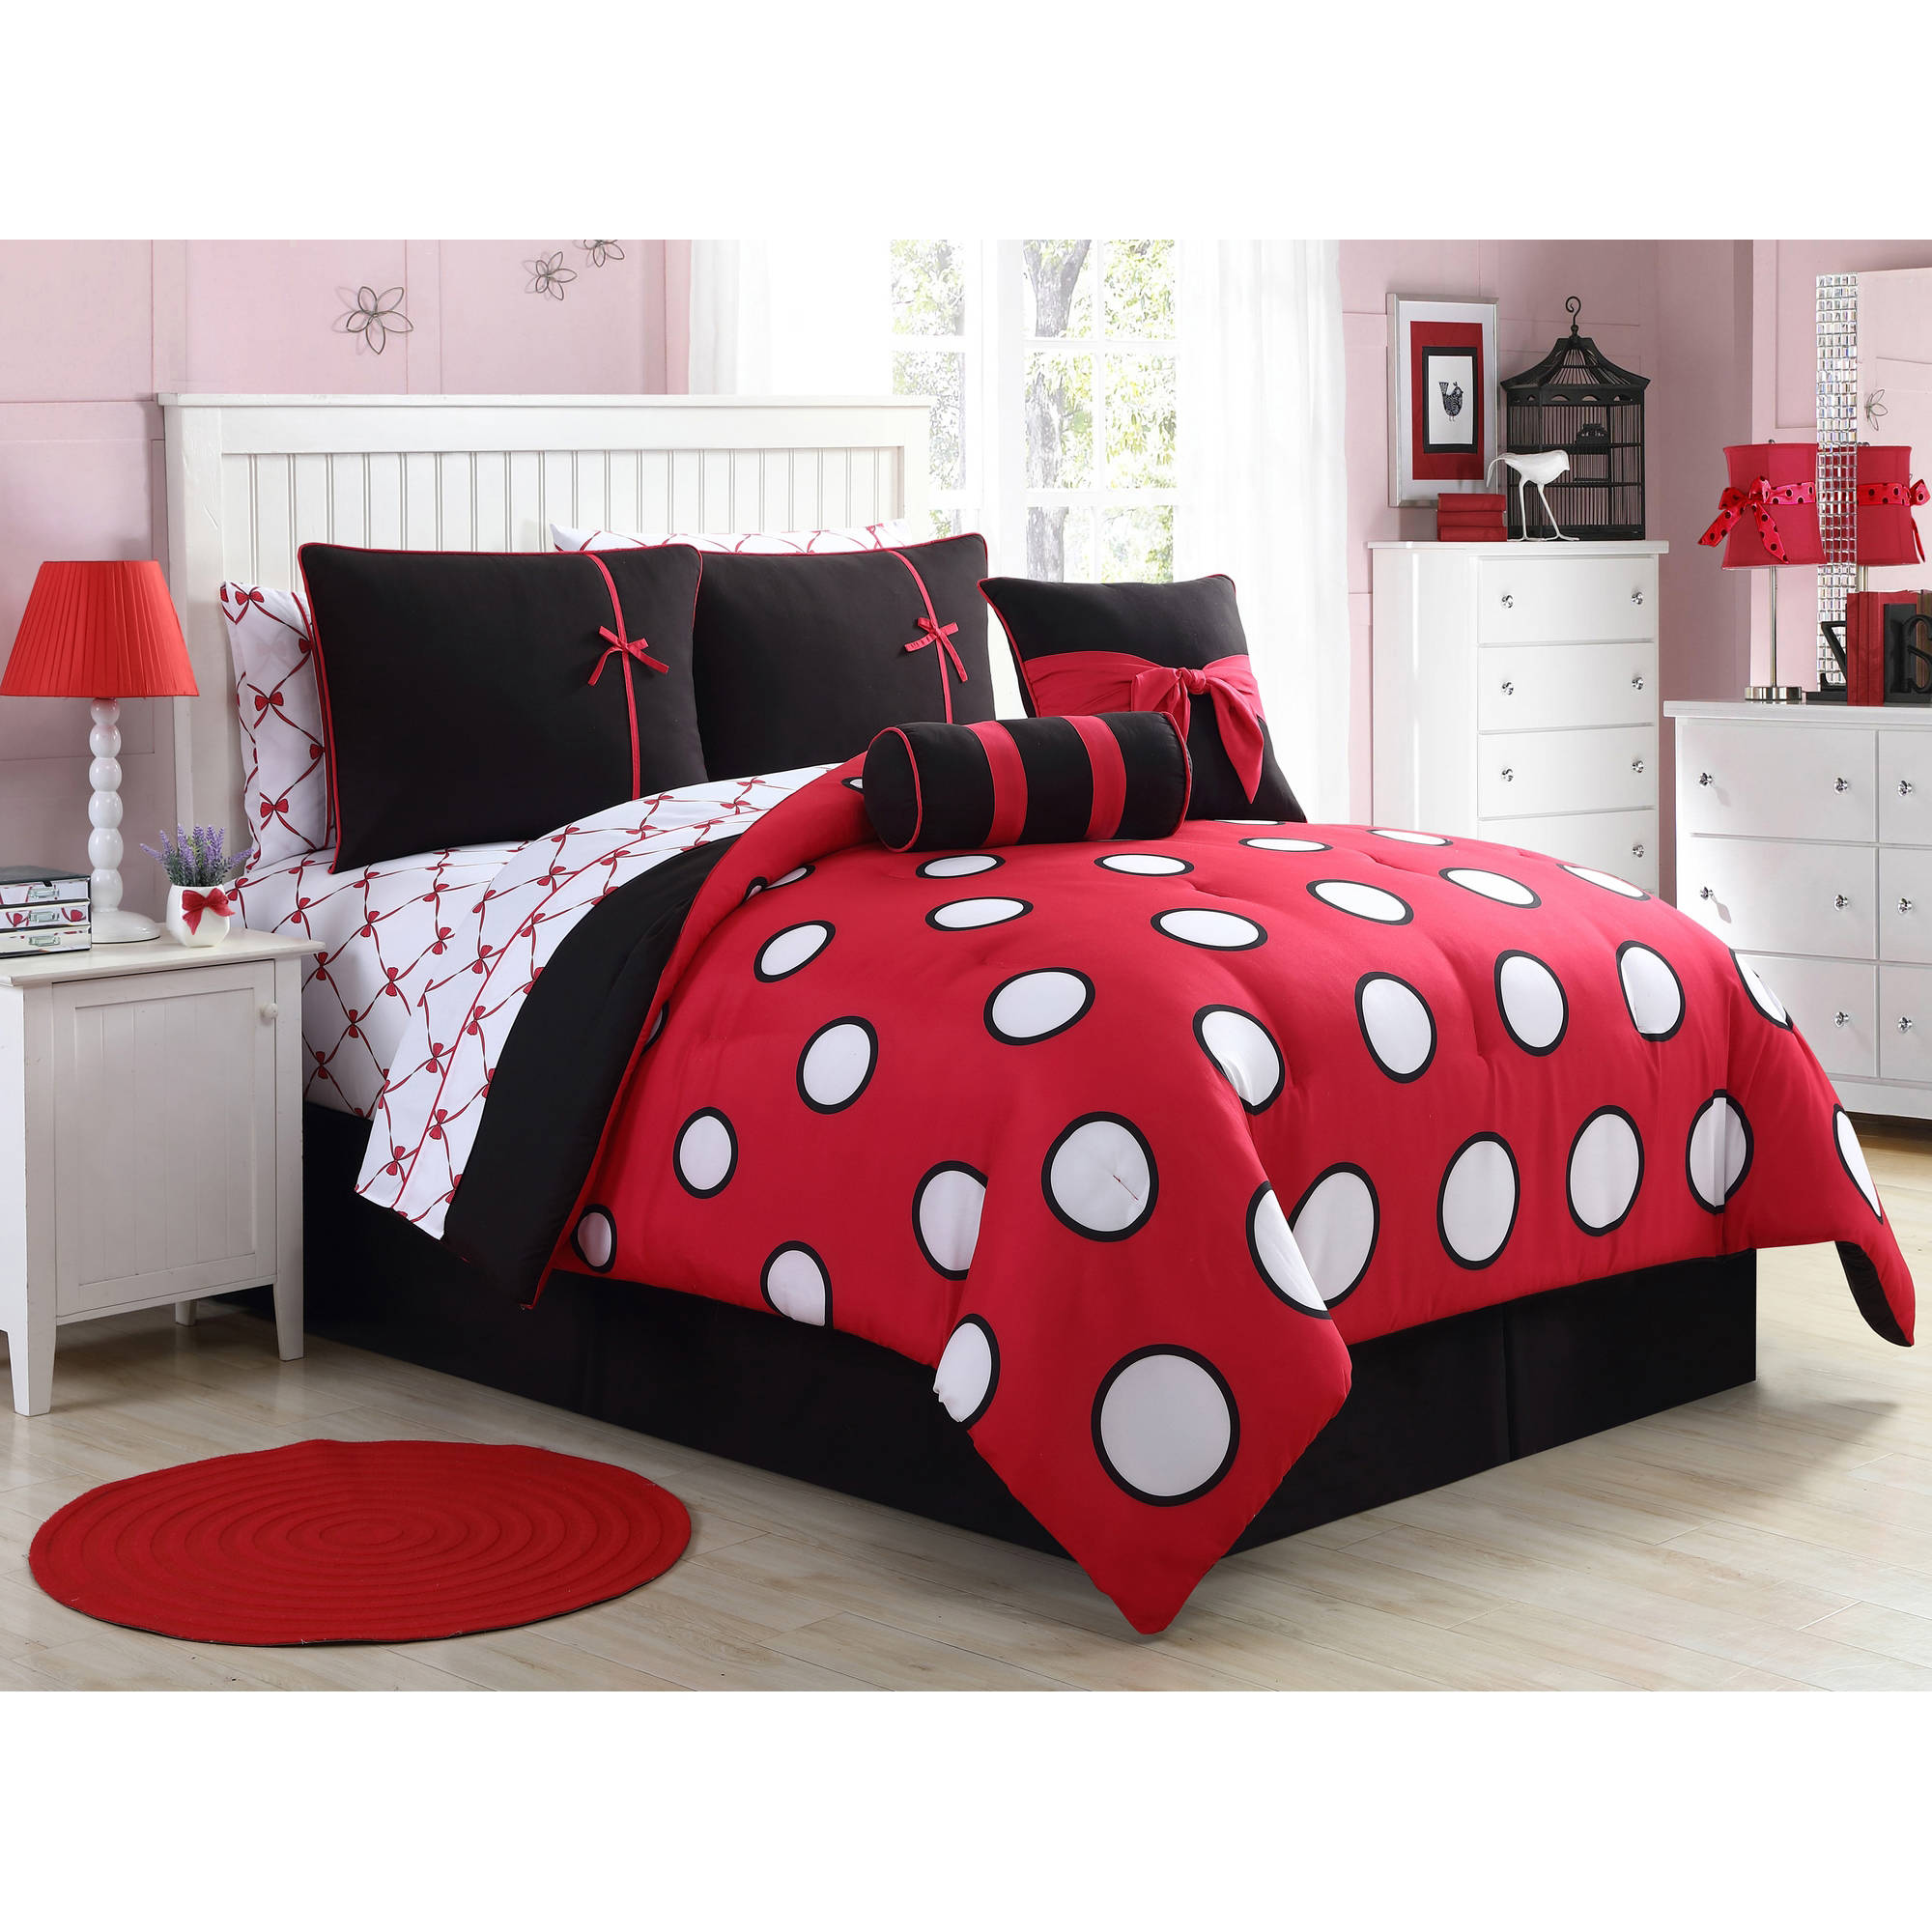 VCNY Home Sophie Polka Dot 8/10 Piece Bed in a Bag Comforter Set, Sheet Set and Decorative Pillows Included